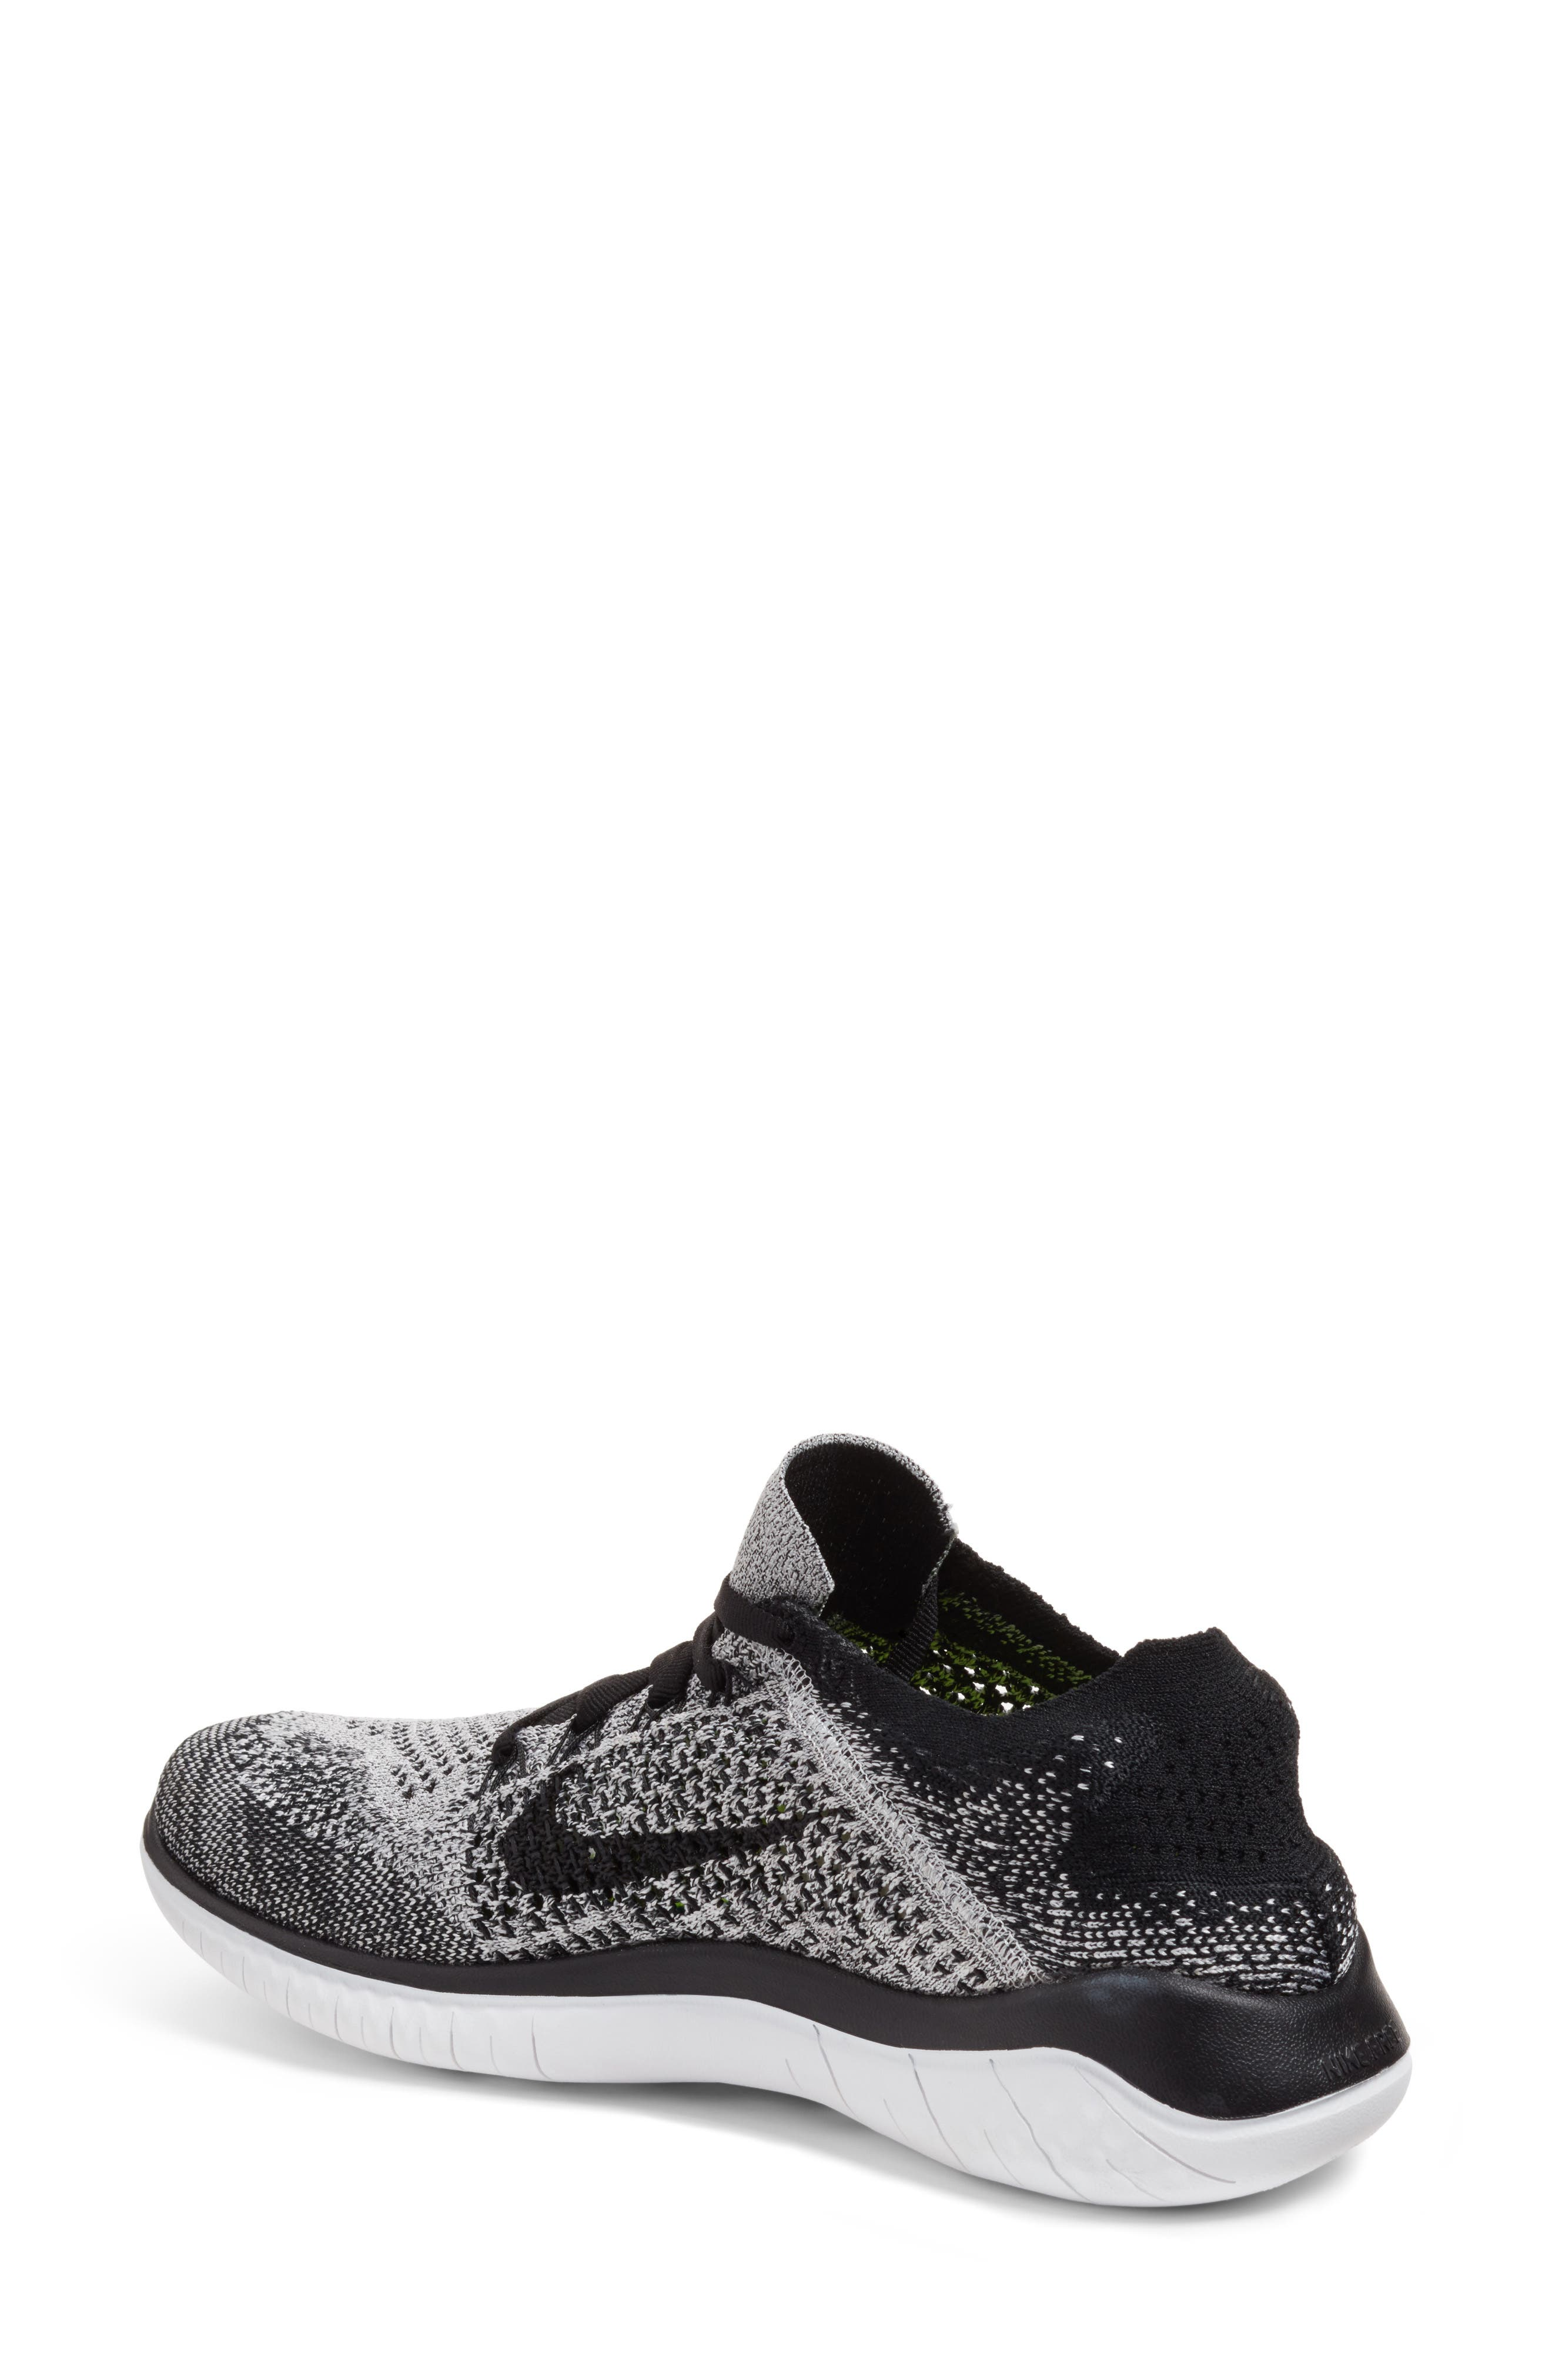 Free RN Flyknit 2018 Running Shoe,                             Alternate thumbnail 14, color,